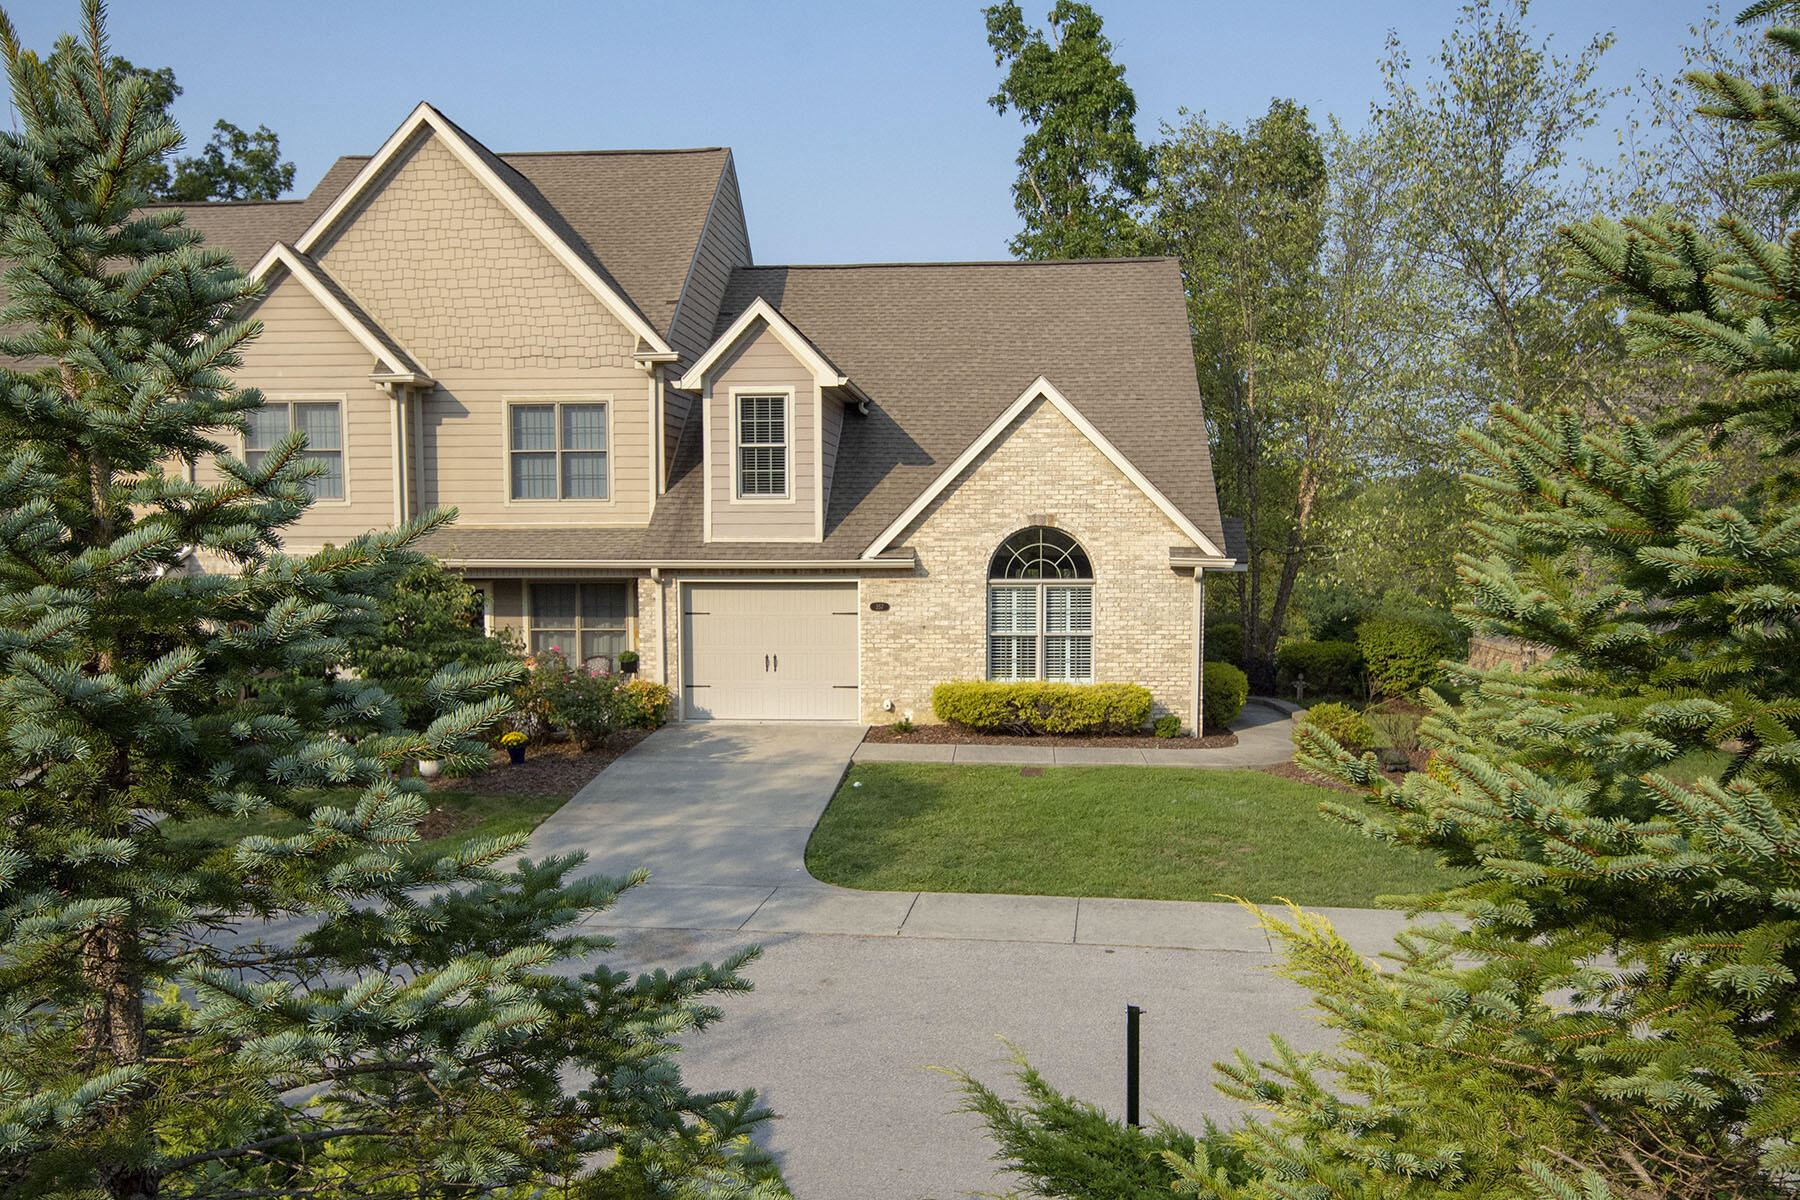 Photo of 357 Coldwater Drive, Johnson City, TN 37601 (MLS # 9928813)